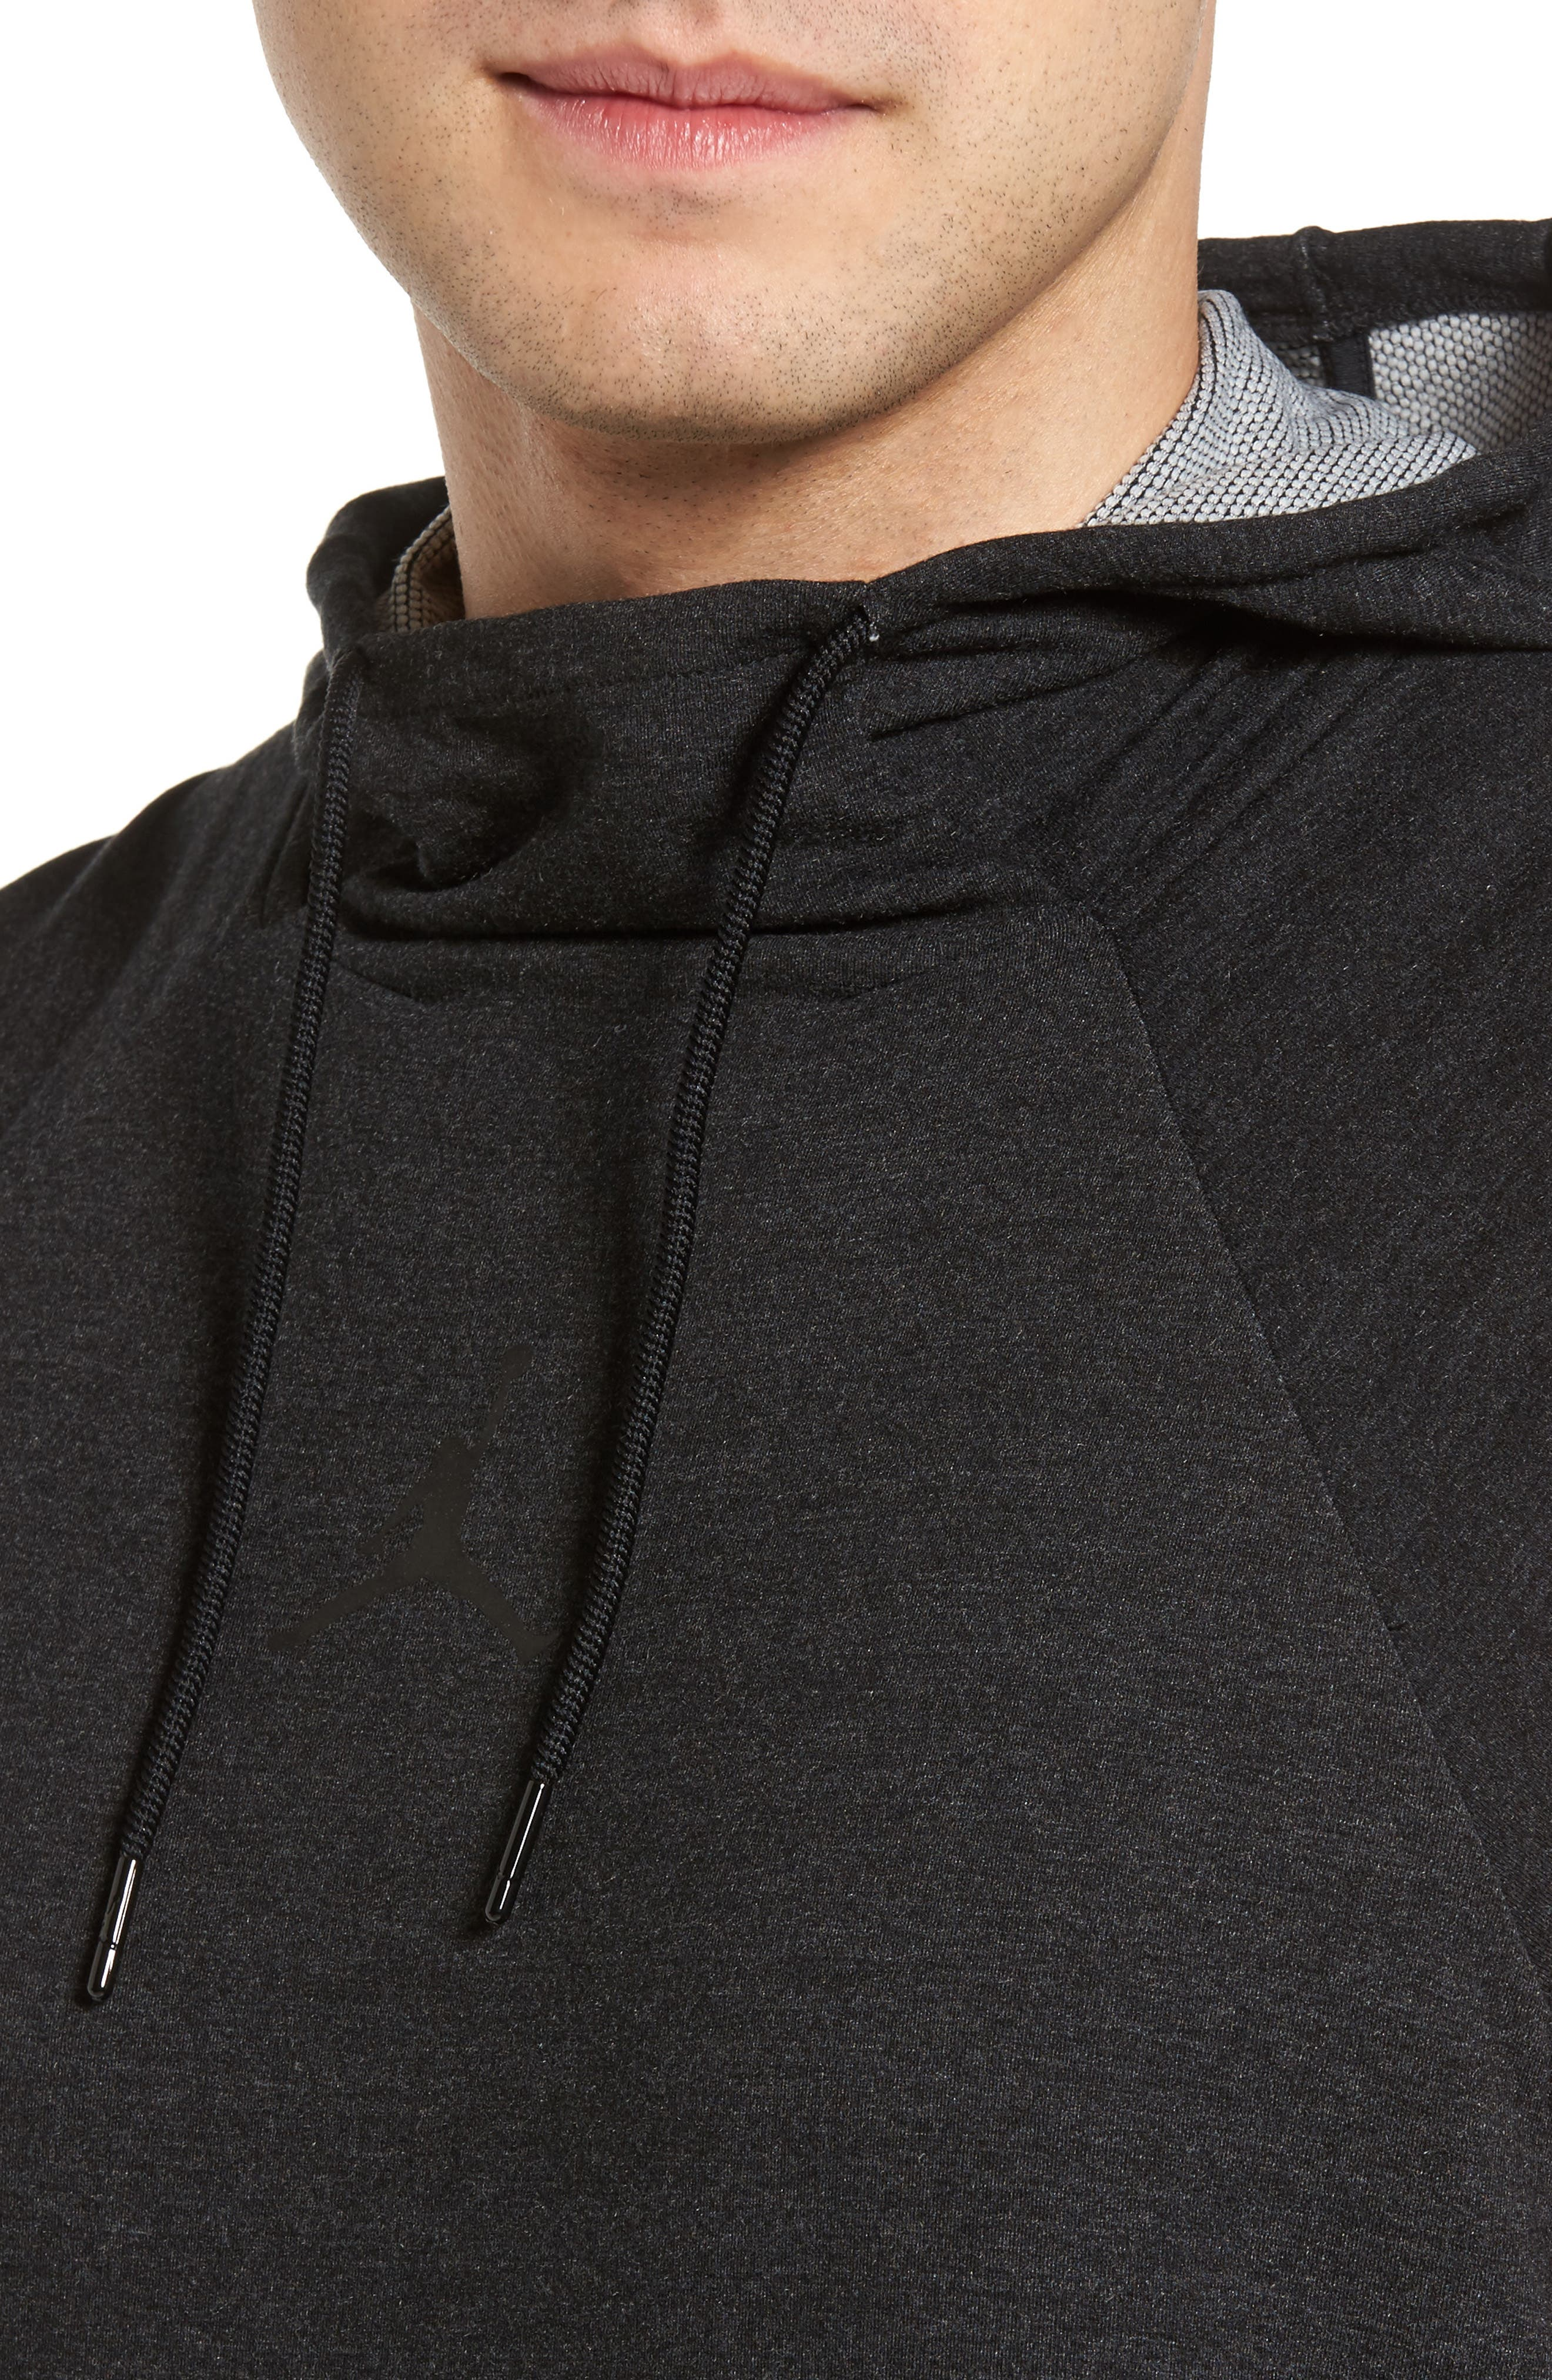 23 Tech Sphere Sleeveless Training Hoodie,                             Alternate thumbnail 4, color,                             010